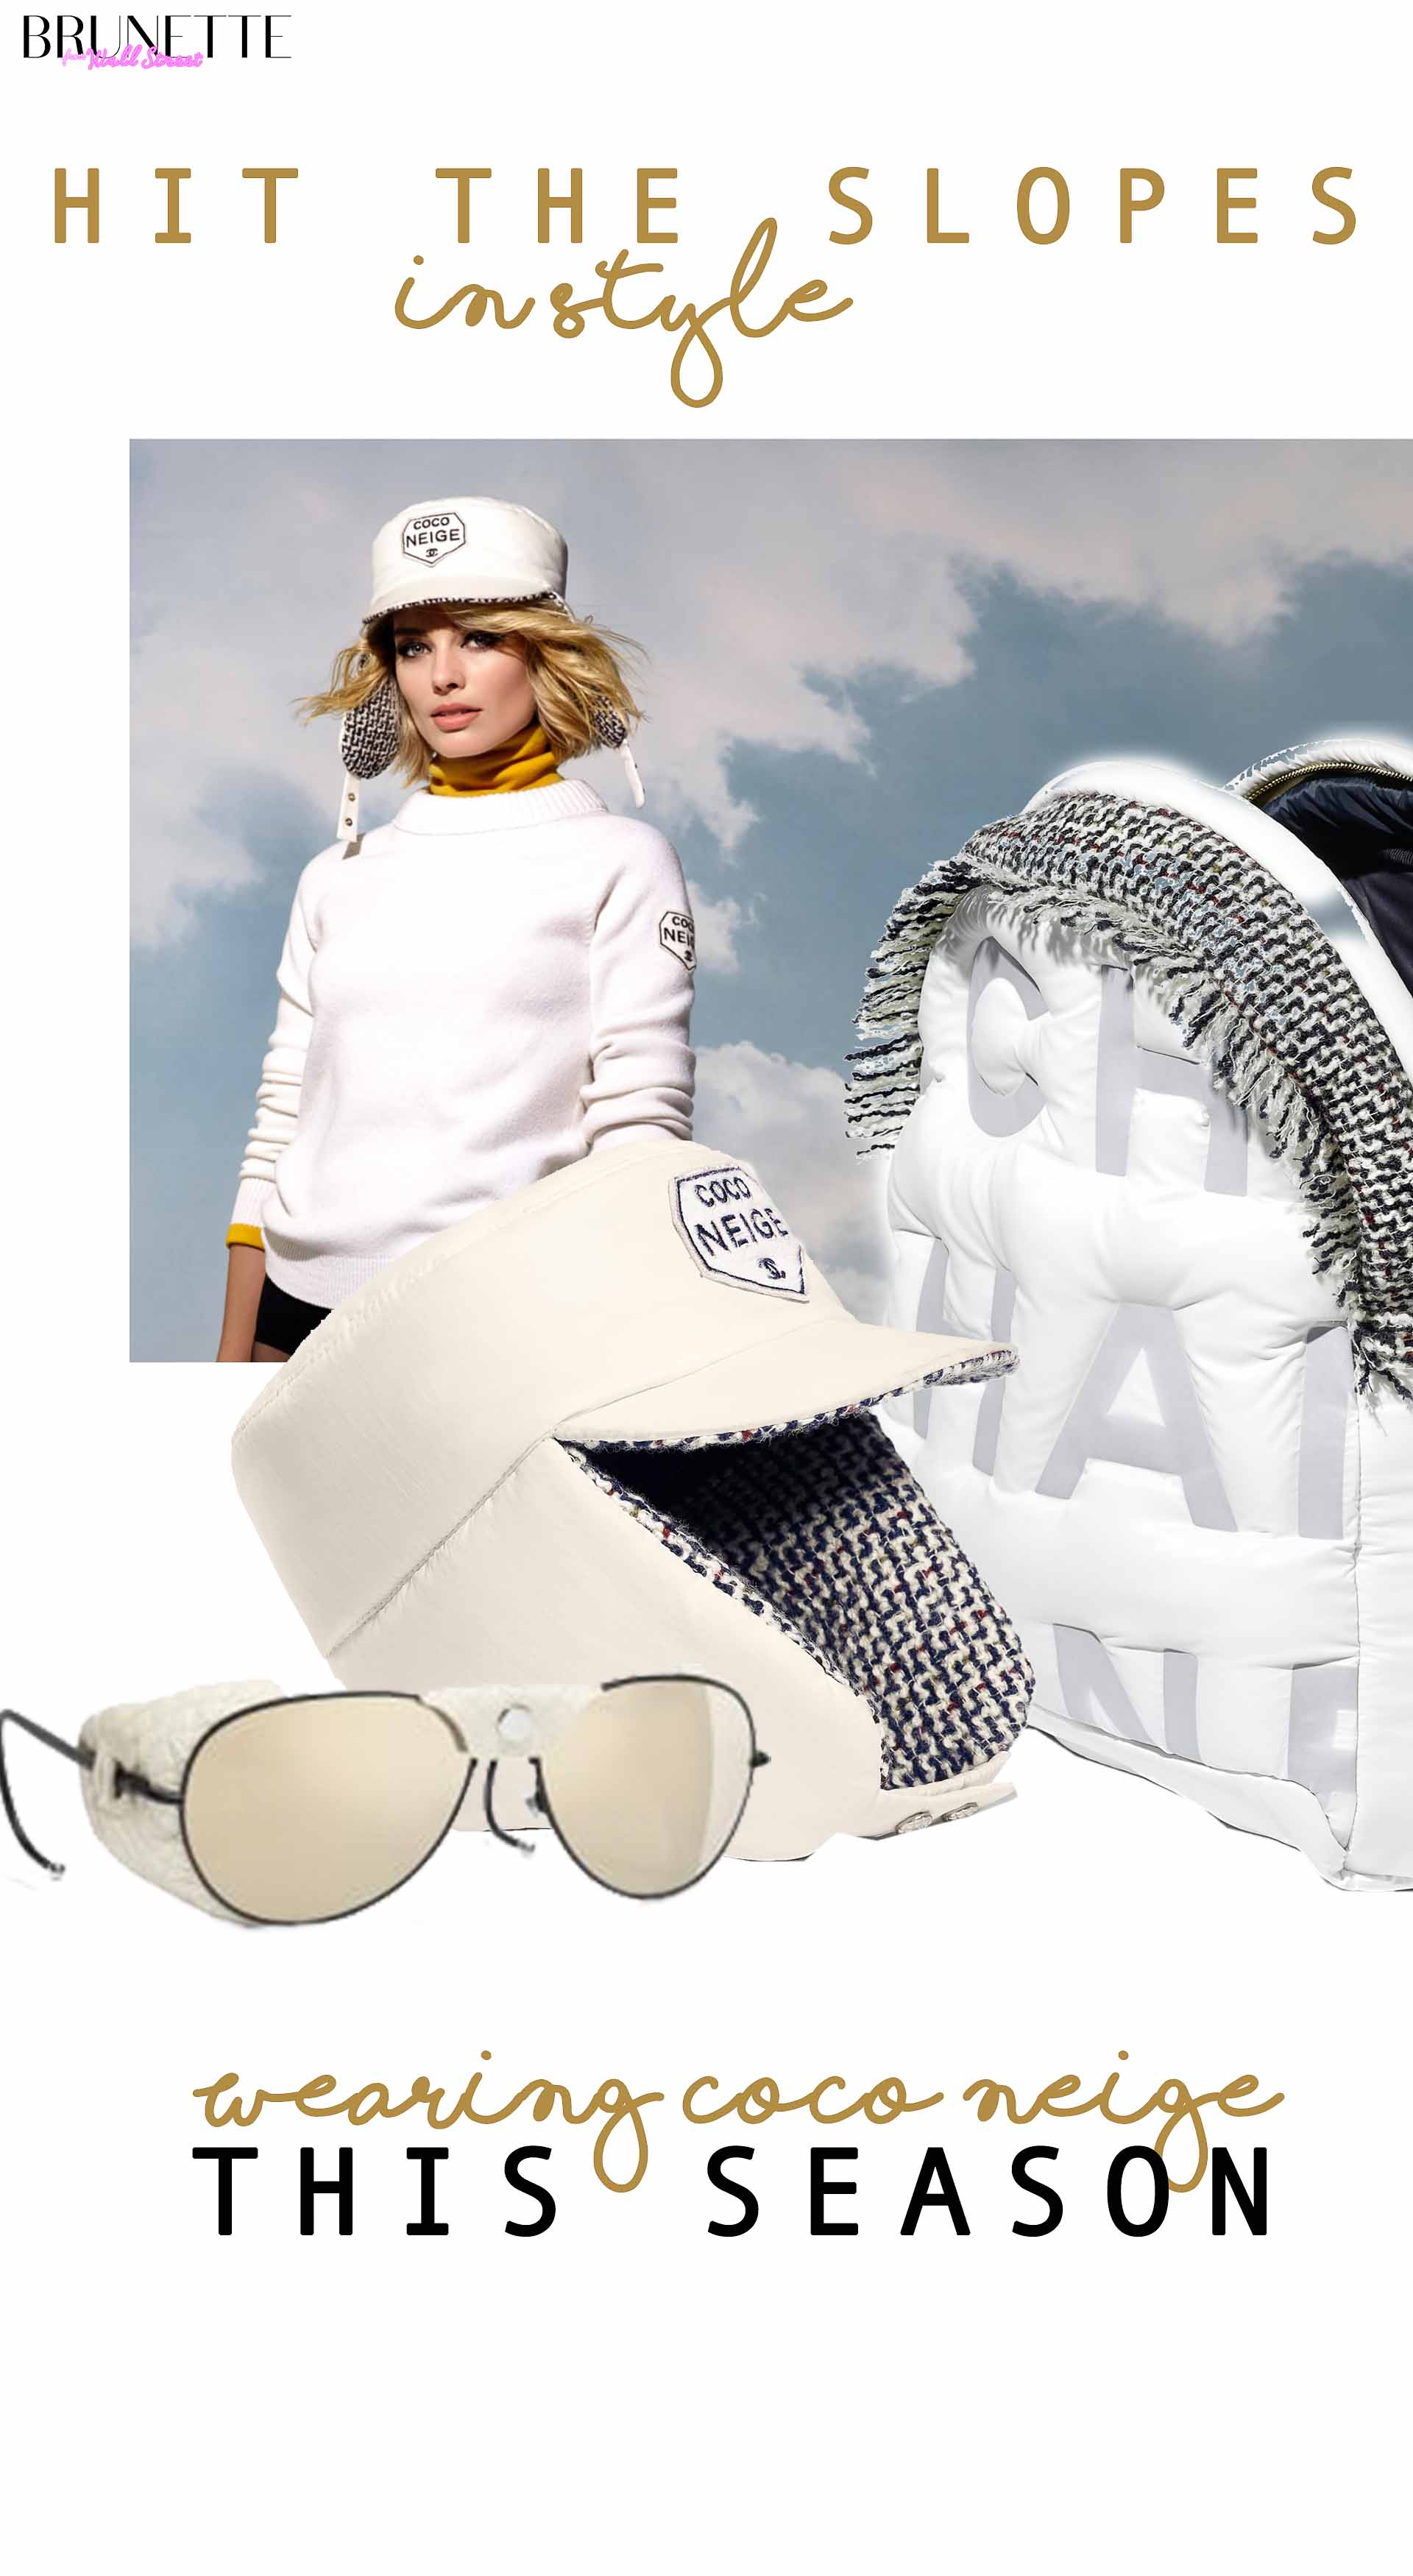 Chanel sunglasses, Chanel backpack, Chanel hat with text overlay Hit the slopes in style wearing Coco Beige this season